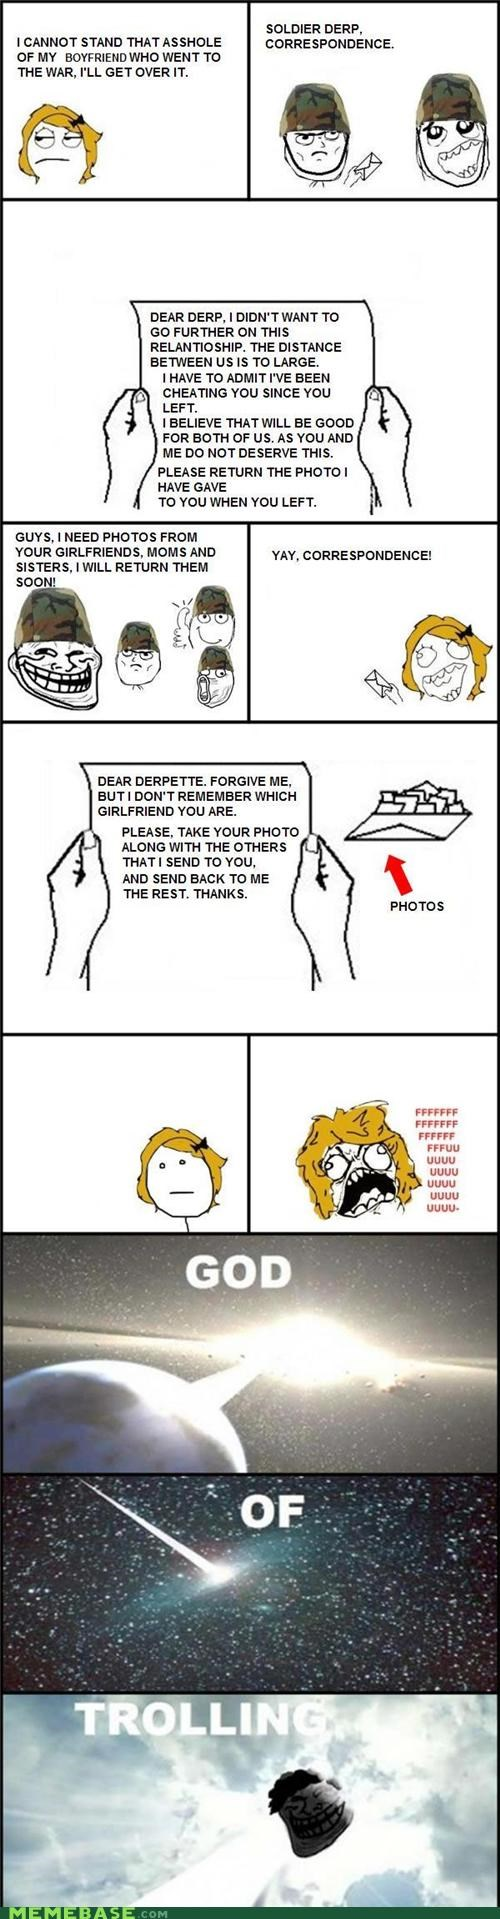 army break up mail photos Rage Comics - 5199325440